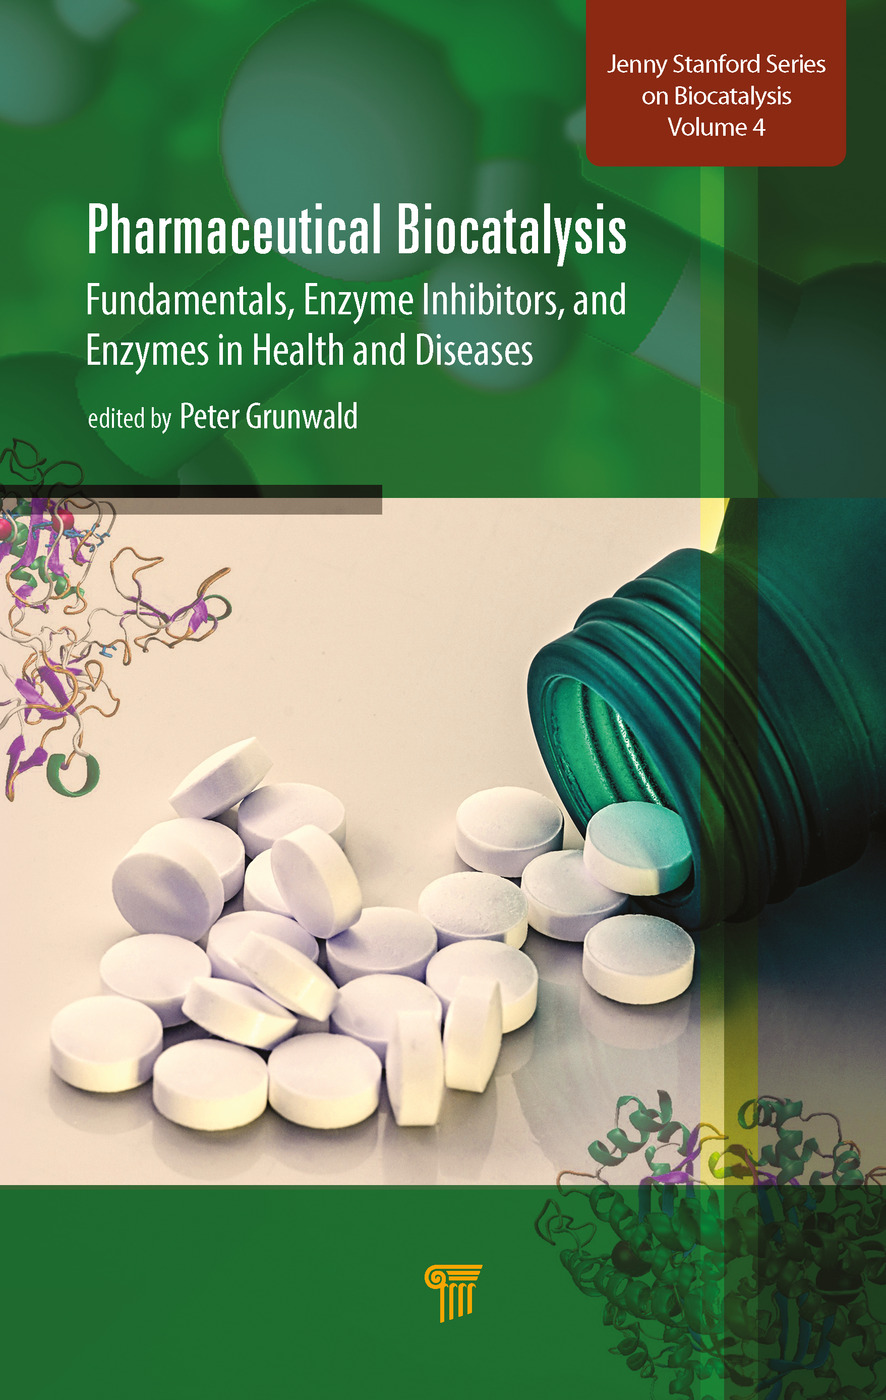 Pharmaceutical Biocatalysis: Fundamentals, Enzyme Inhibitors, and Enzymes in Health and Diseases book cover